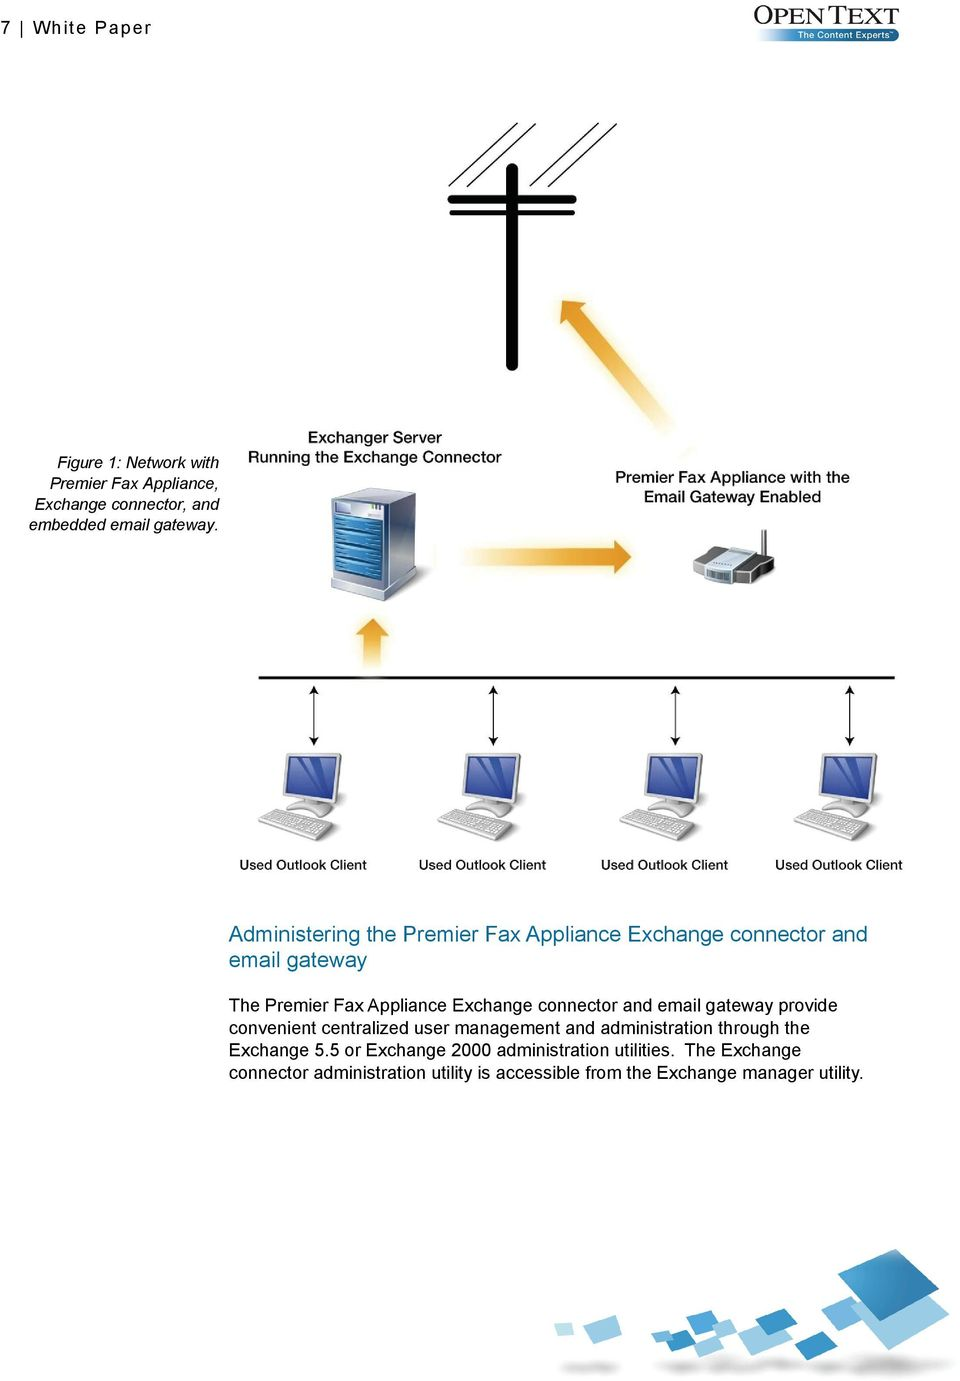 connector and email gateway provide convenient centralized user management and administration through the Exchange 5.